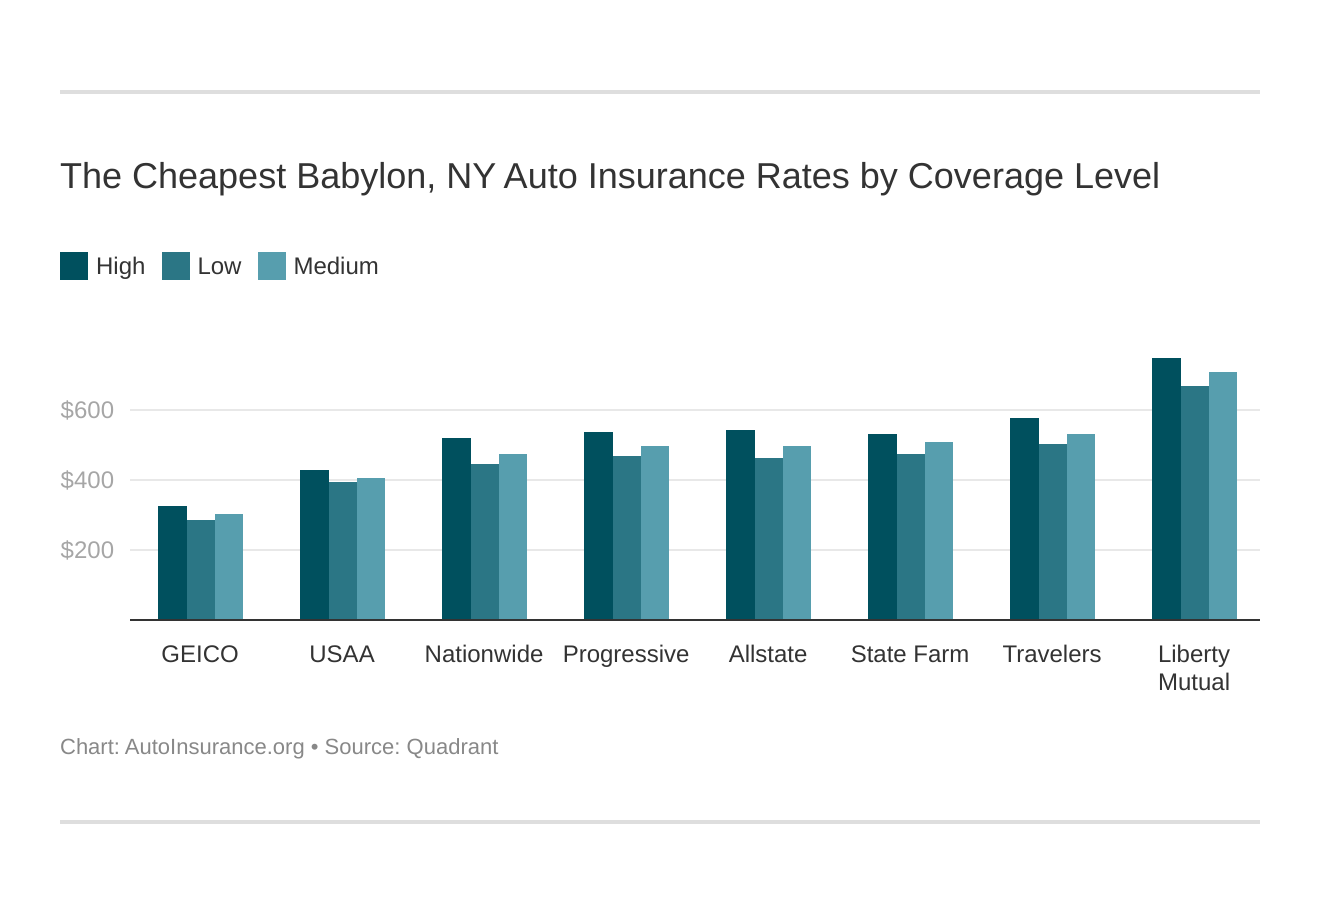 The Cheapest Babylon, NY Auto Insurance Rates by Coverage Level